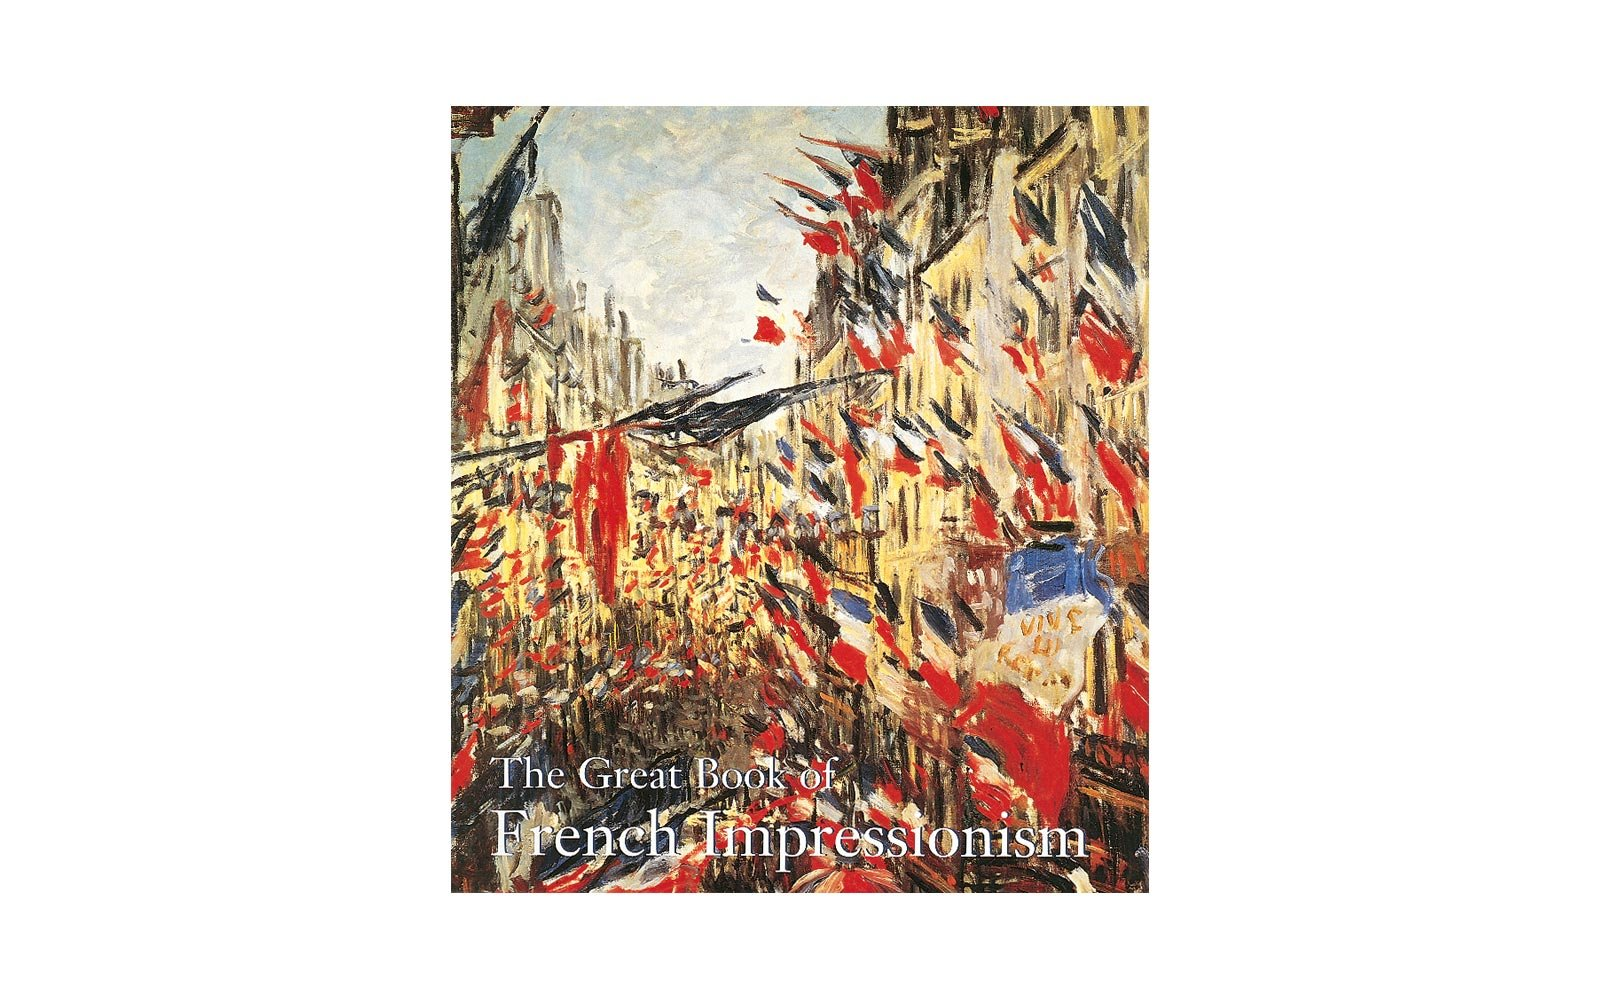 Barnes and Noble The Great Book of French Impressionism